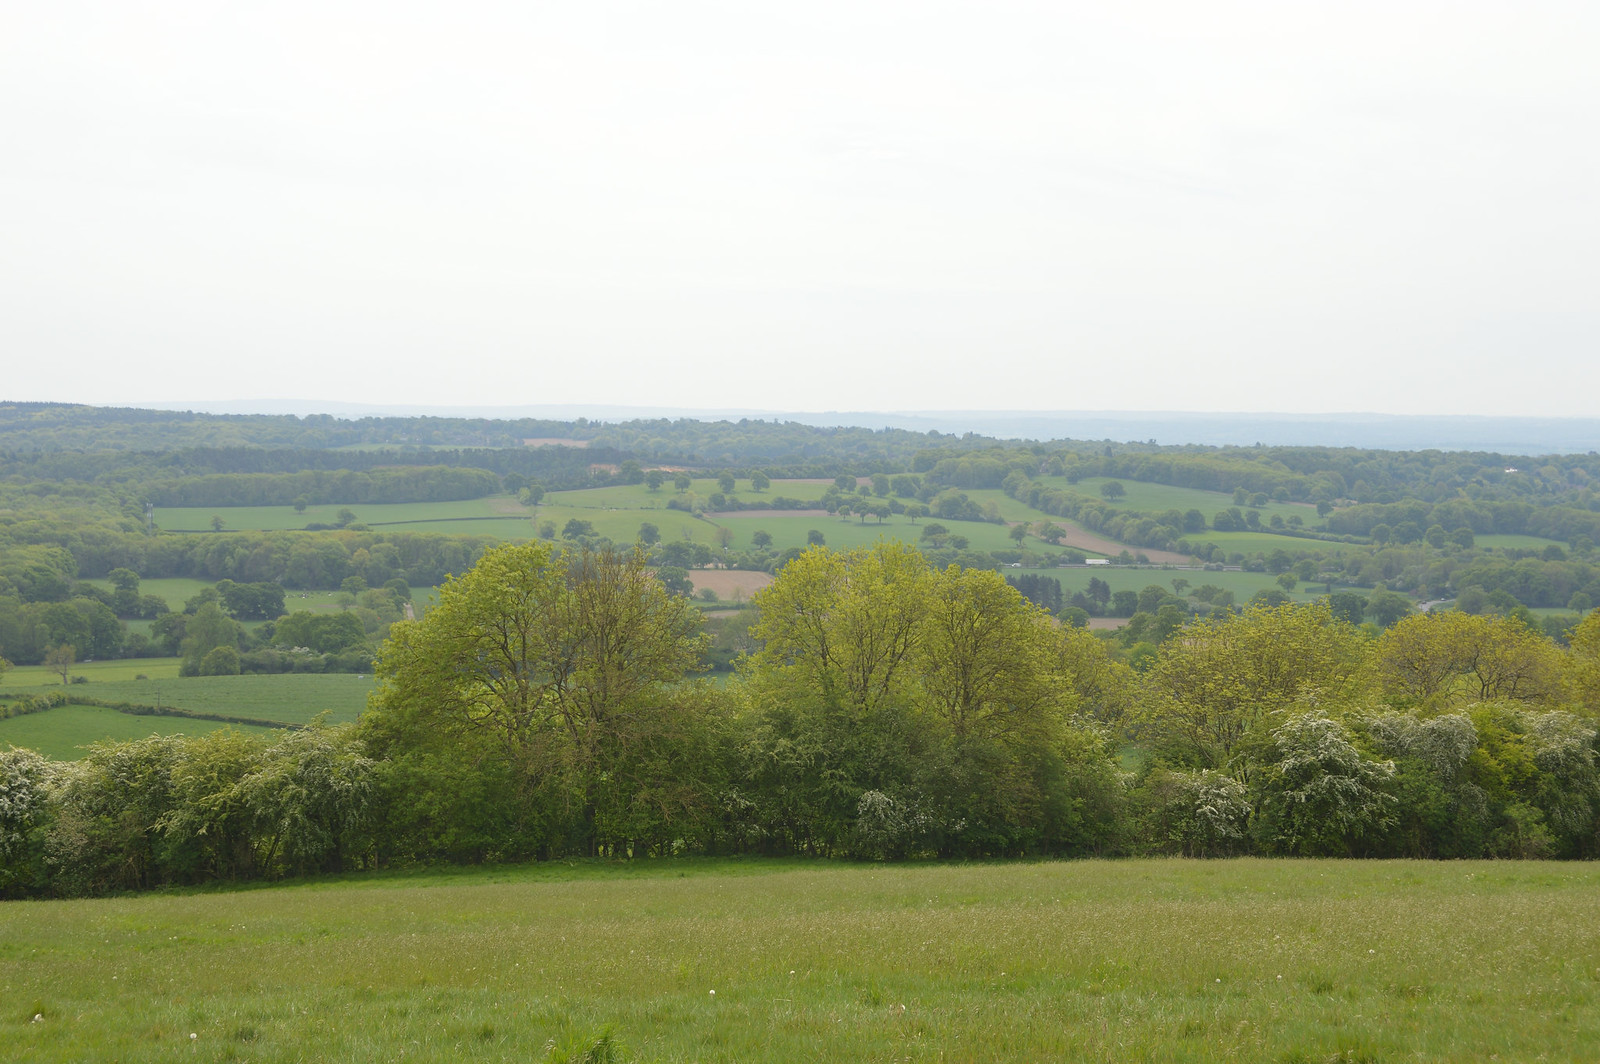 Tatsfield Clarks Lane Farm view to High Weald and South Downs